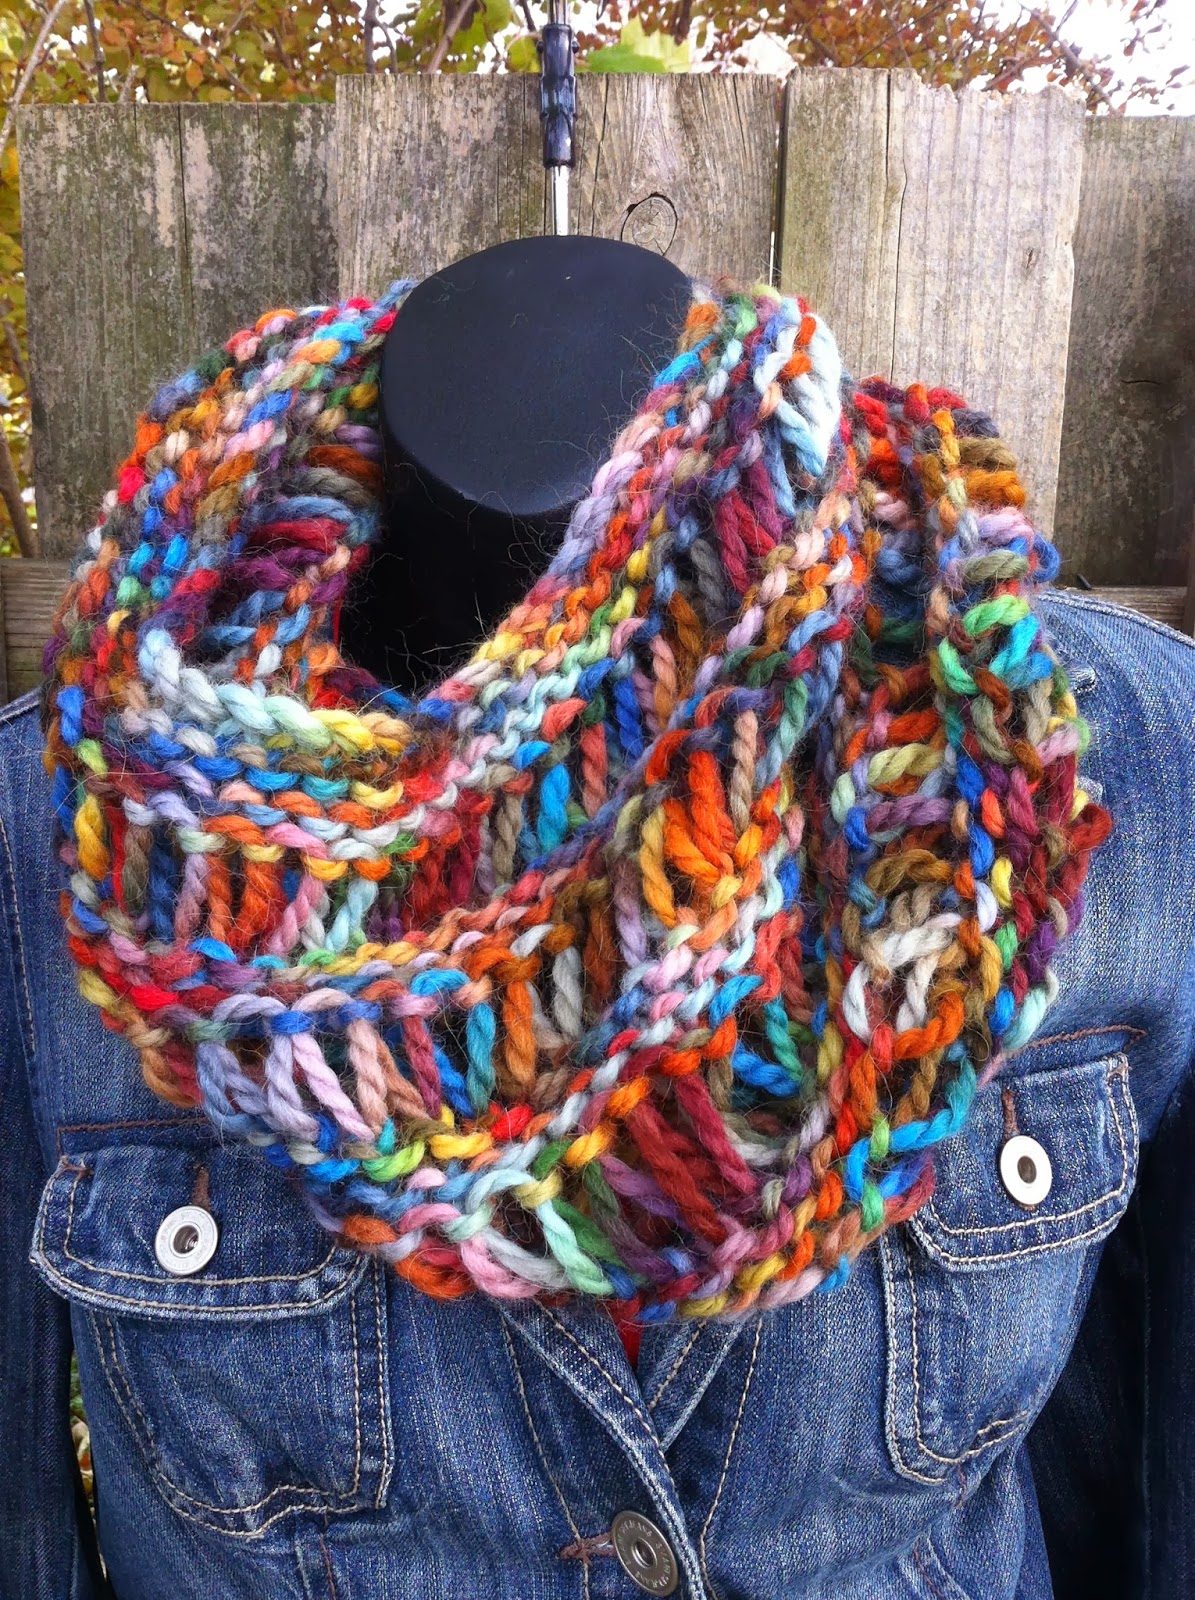 A Really Good Yarn: Dropping Stitches